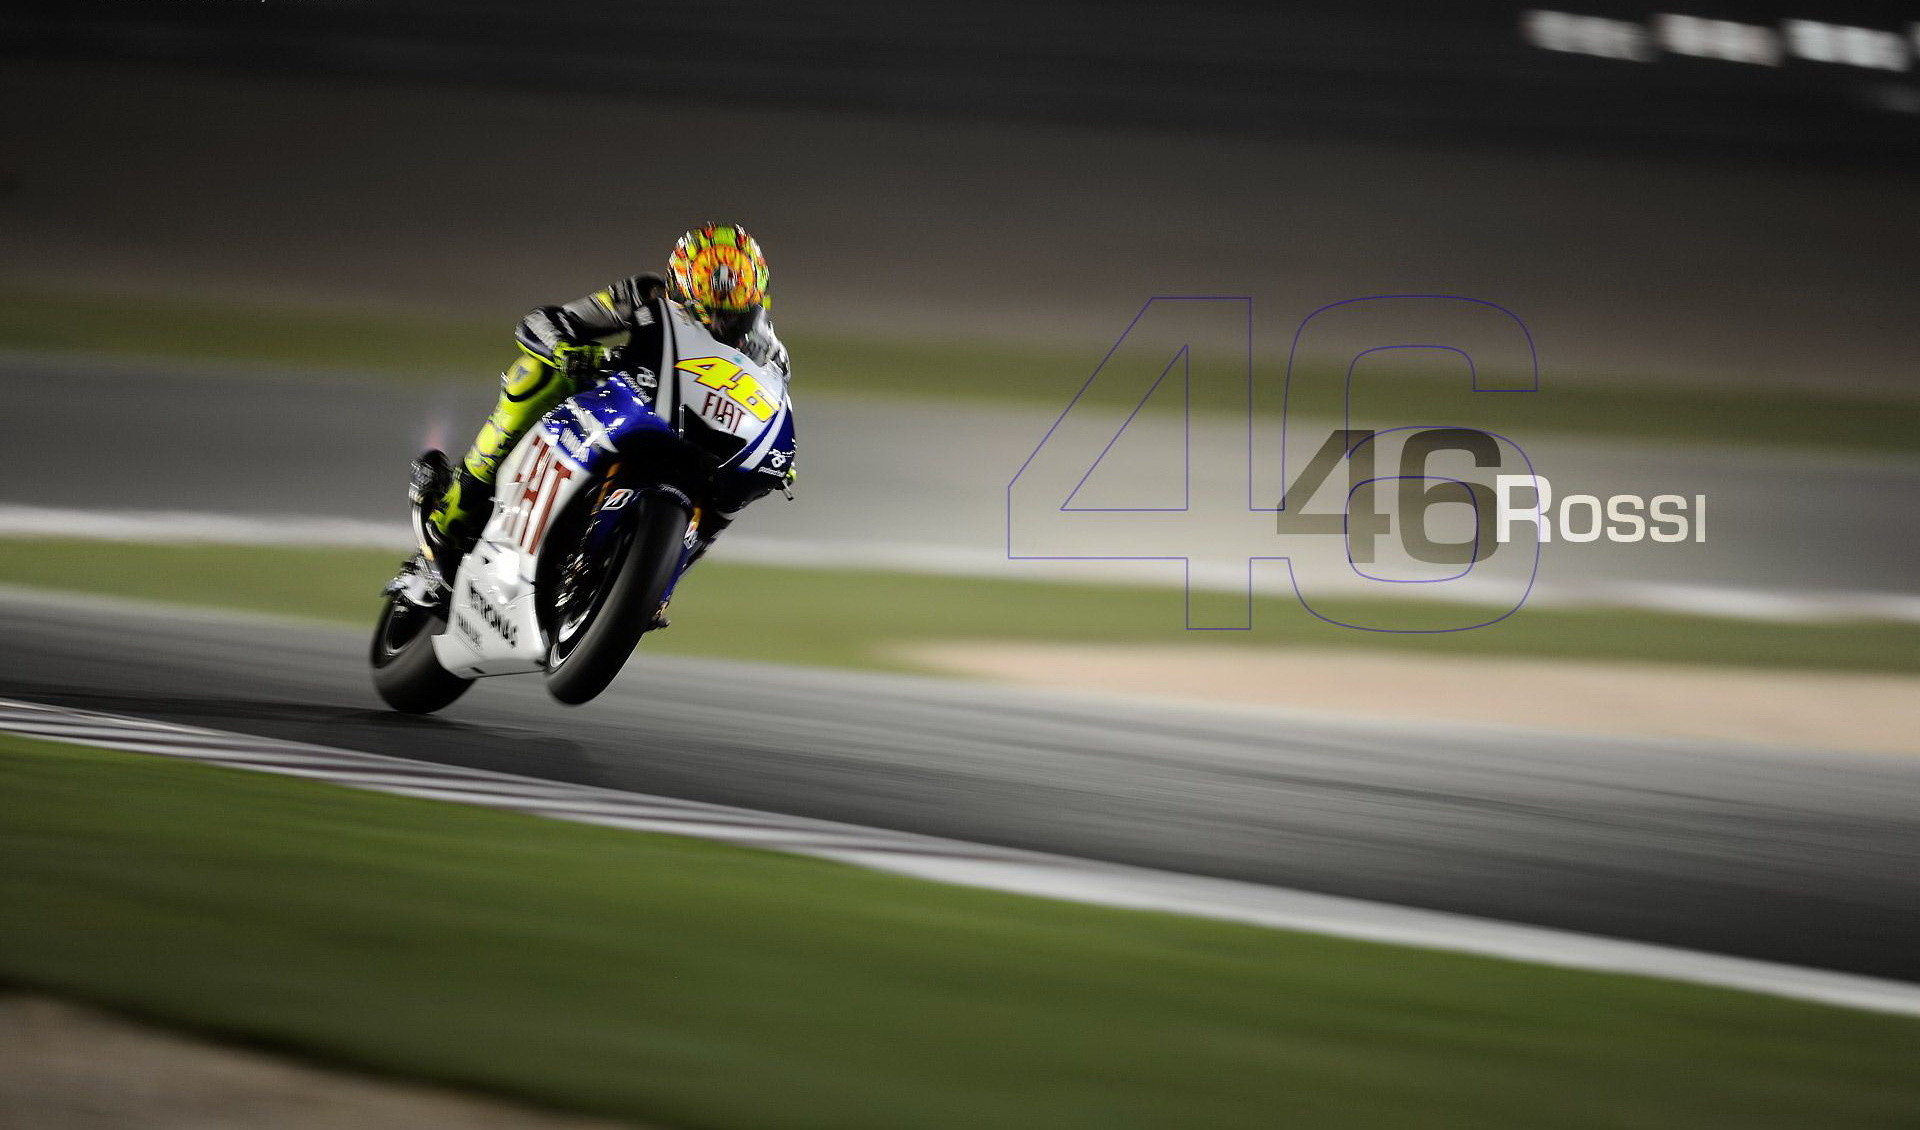 Valentino rossi wallpaper hd 65 images 1920x1130 2013 valentino rossi hd wallpaper photos valentino rossi yamaha 2013 hd motorcycle wallpaper valentino rossi voltagebd Choice Image